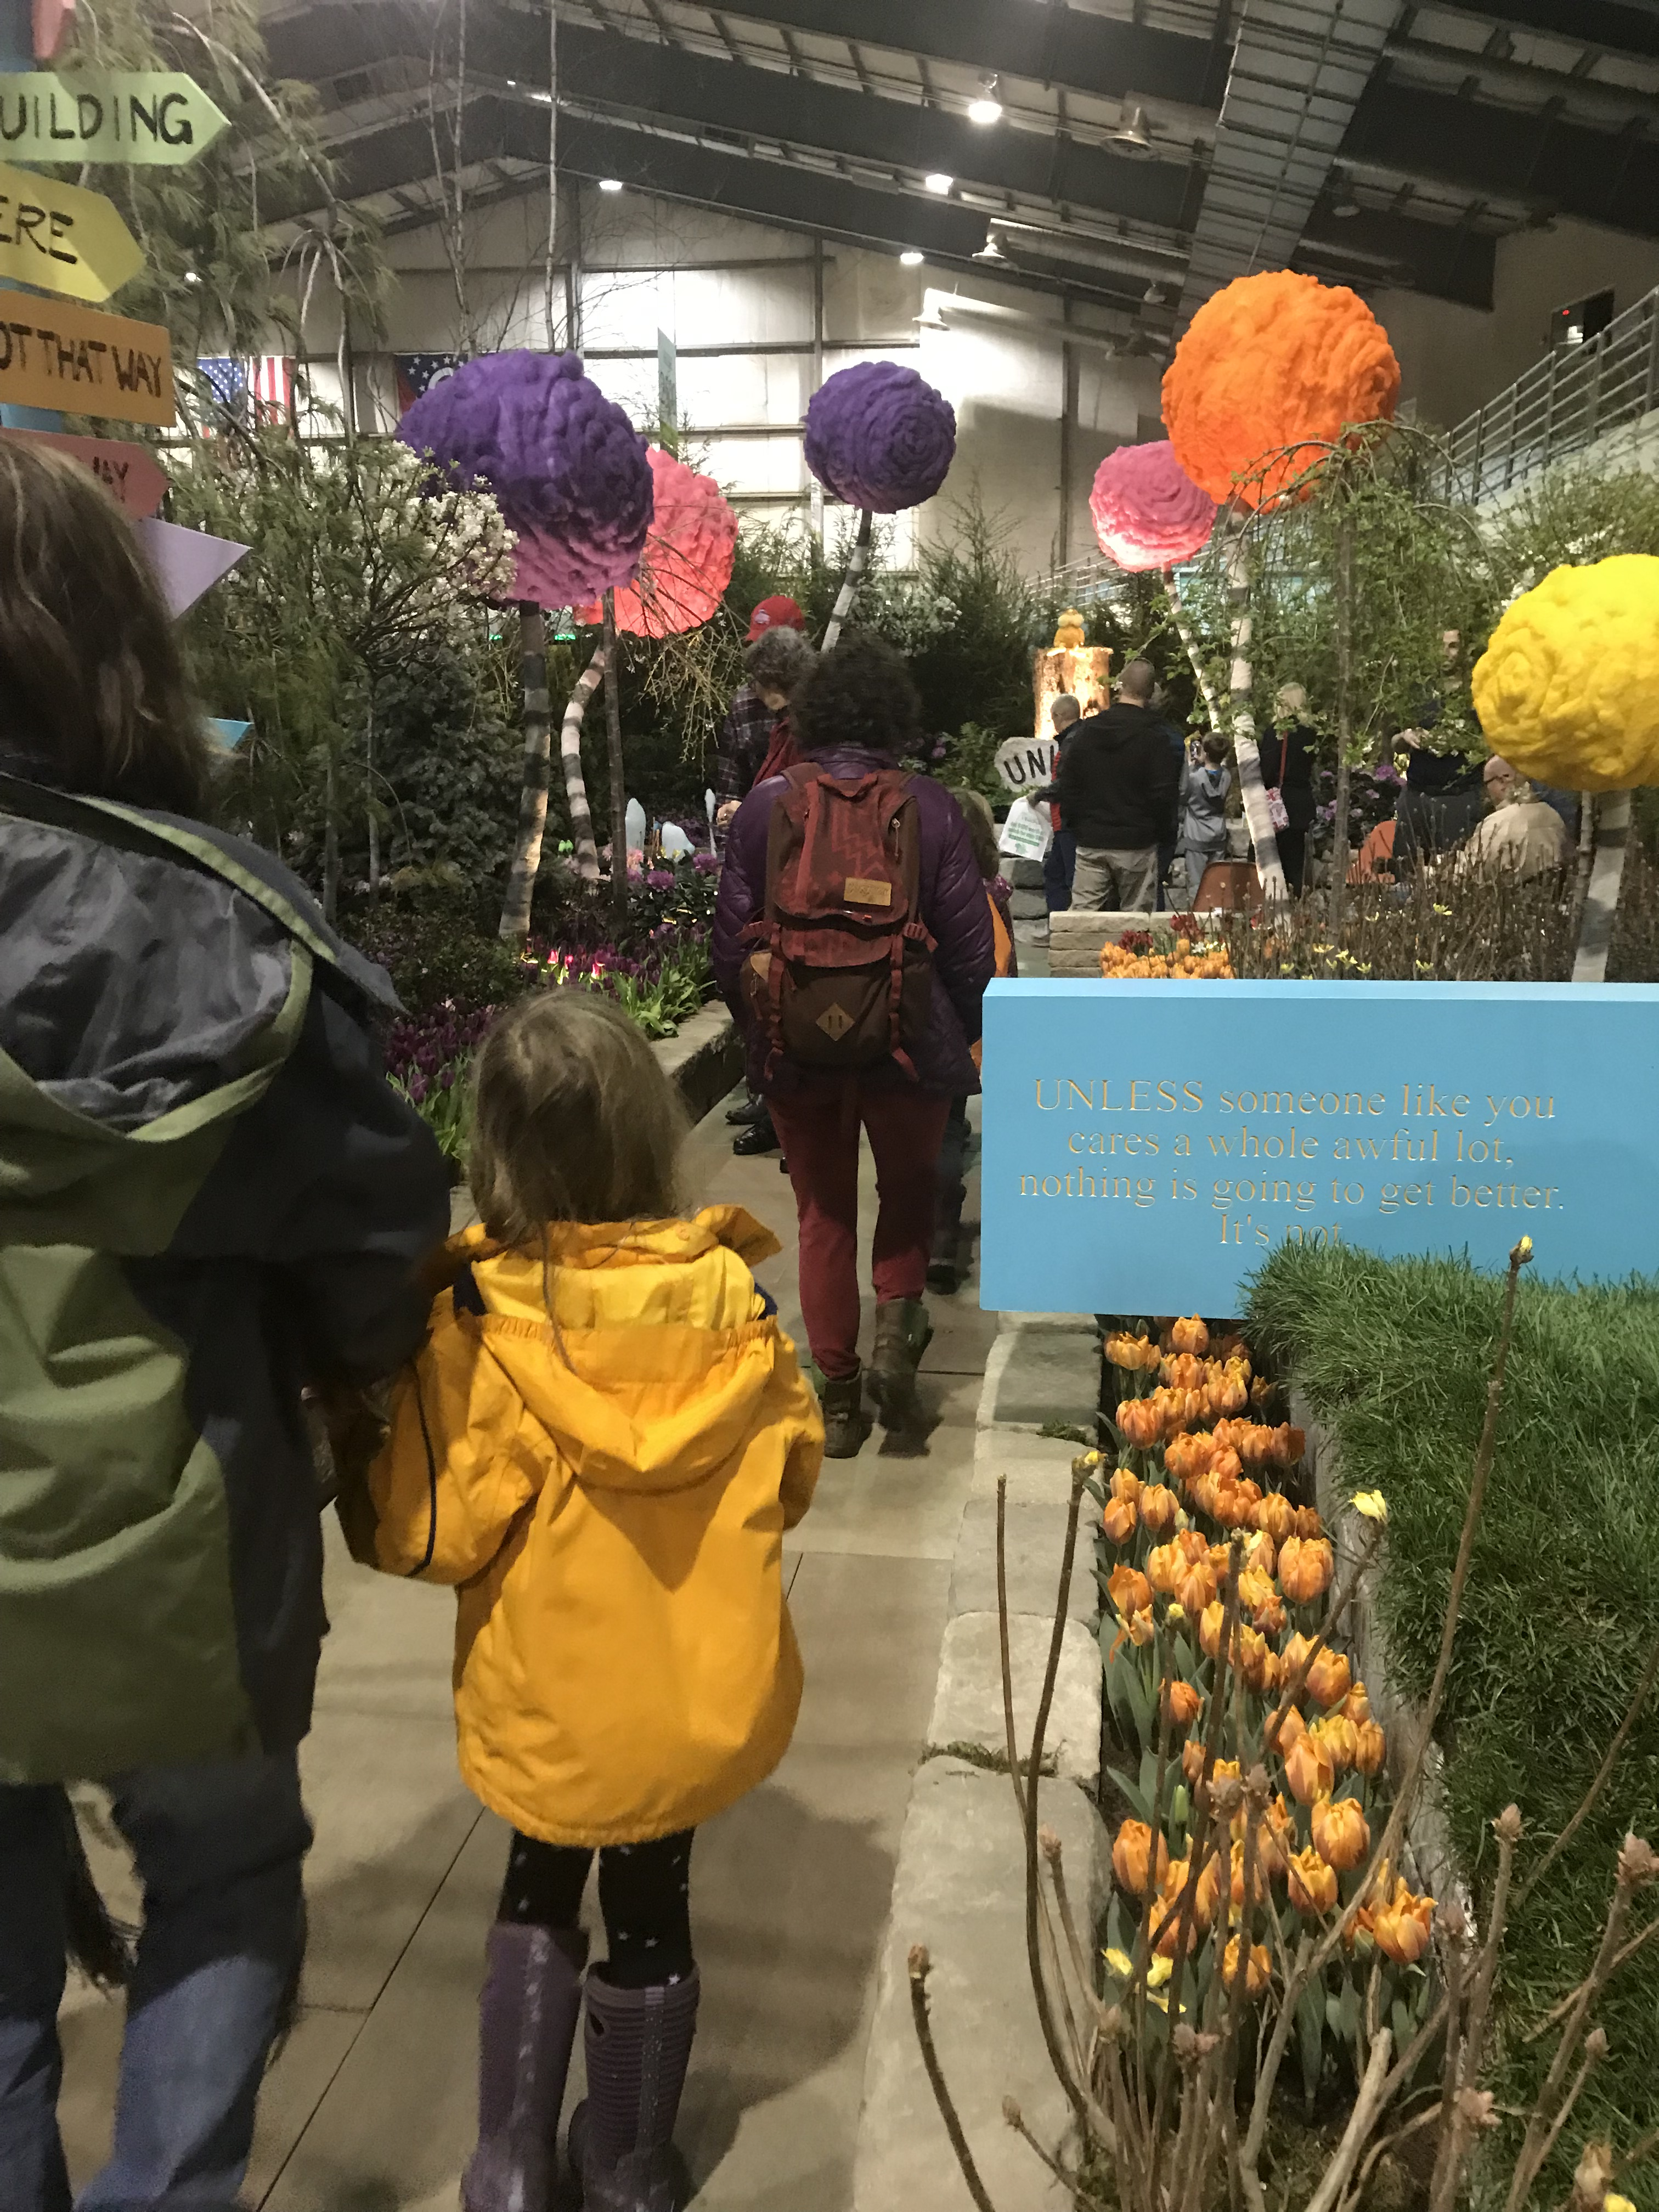 The Lorax Garden Installation. Mildly Amusing, But Not Really Useful As  Urban Farming Inspiration.